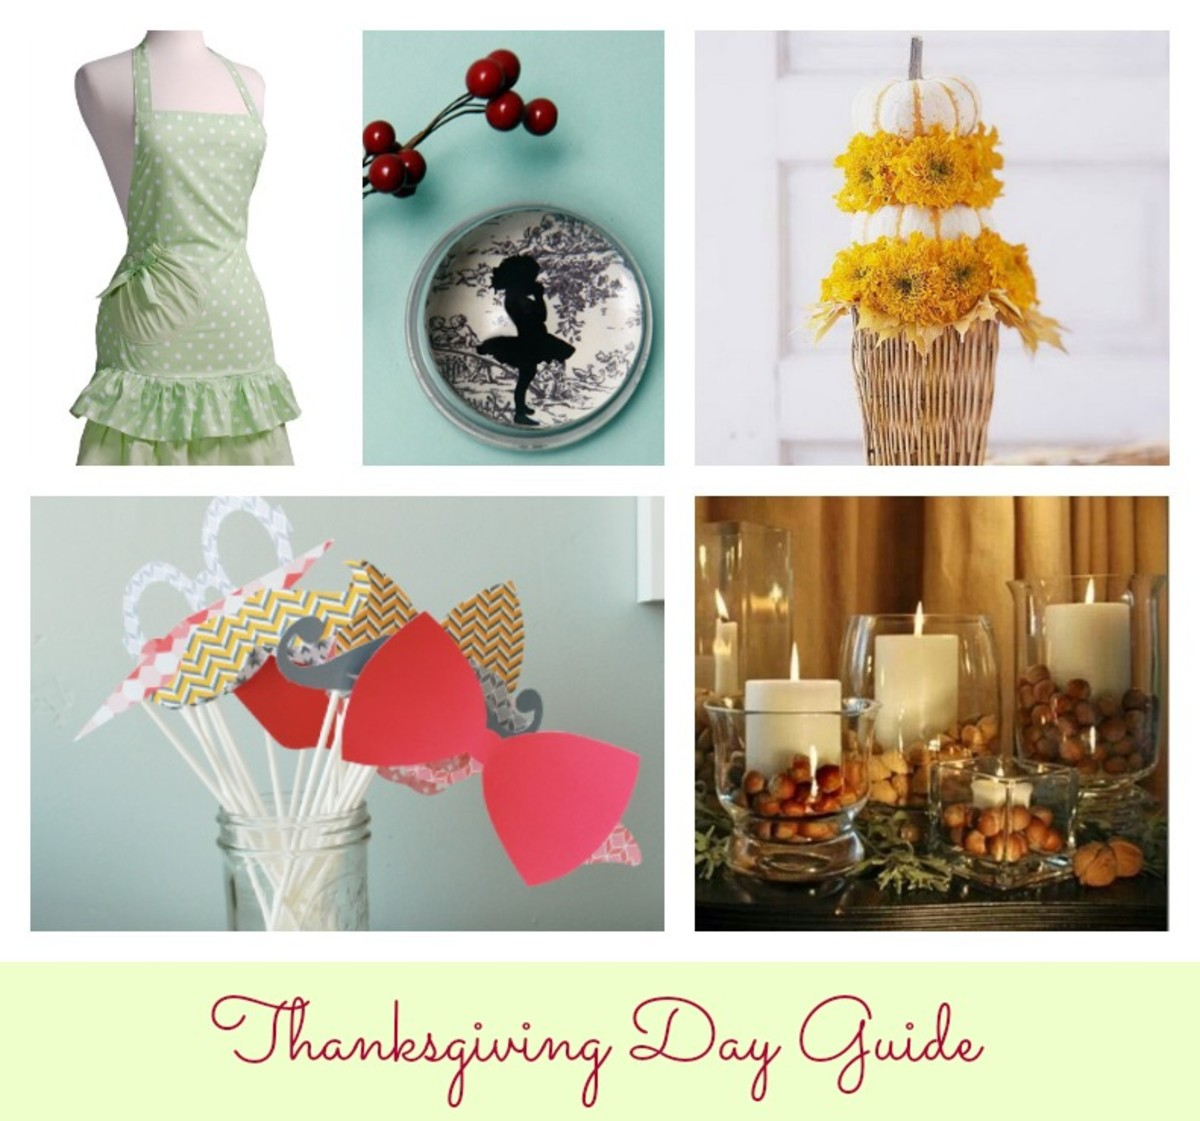 Thanksgiving Day Guide